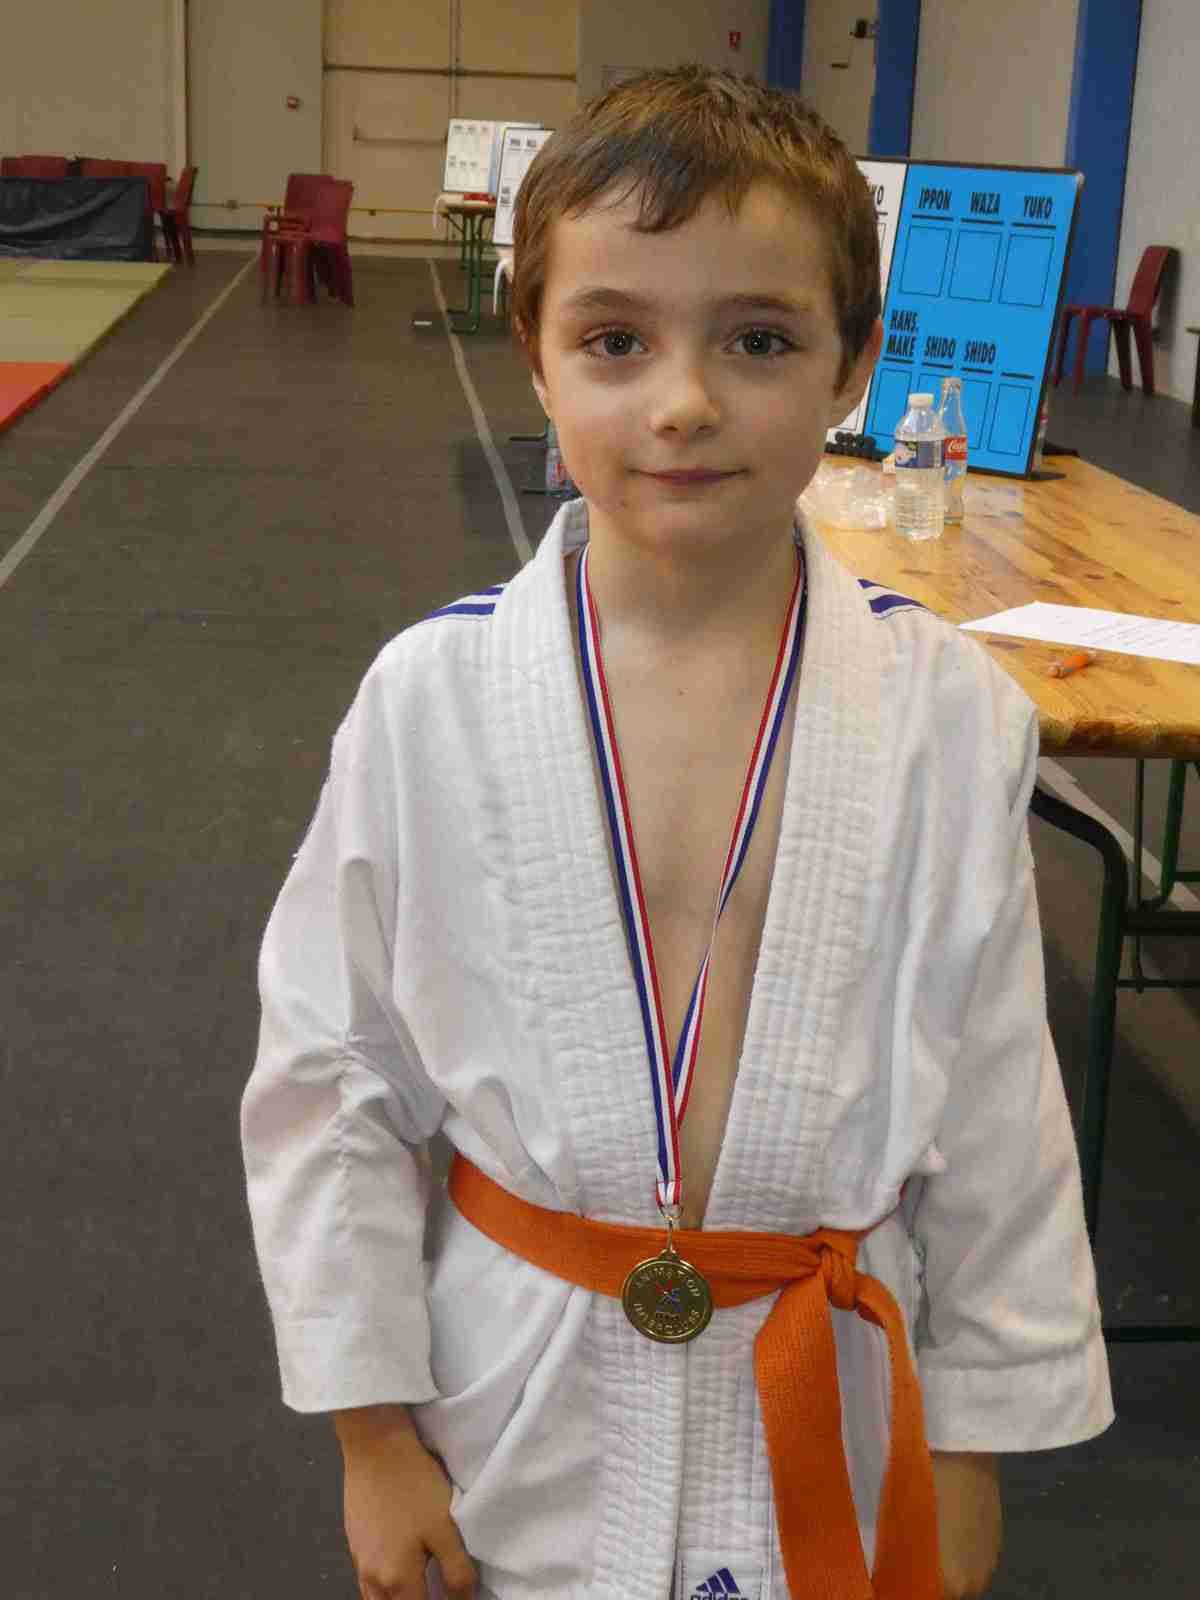 Tournoi amical du Judo Club de BERTRY le 25/03/17